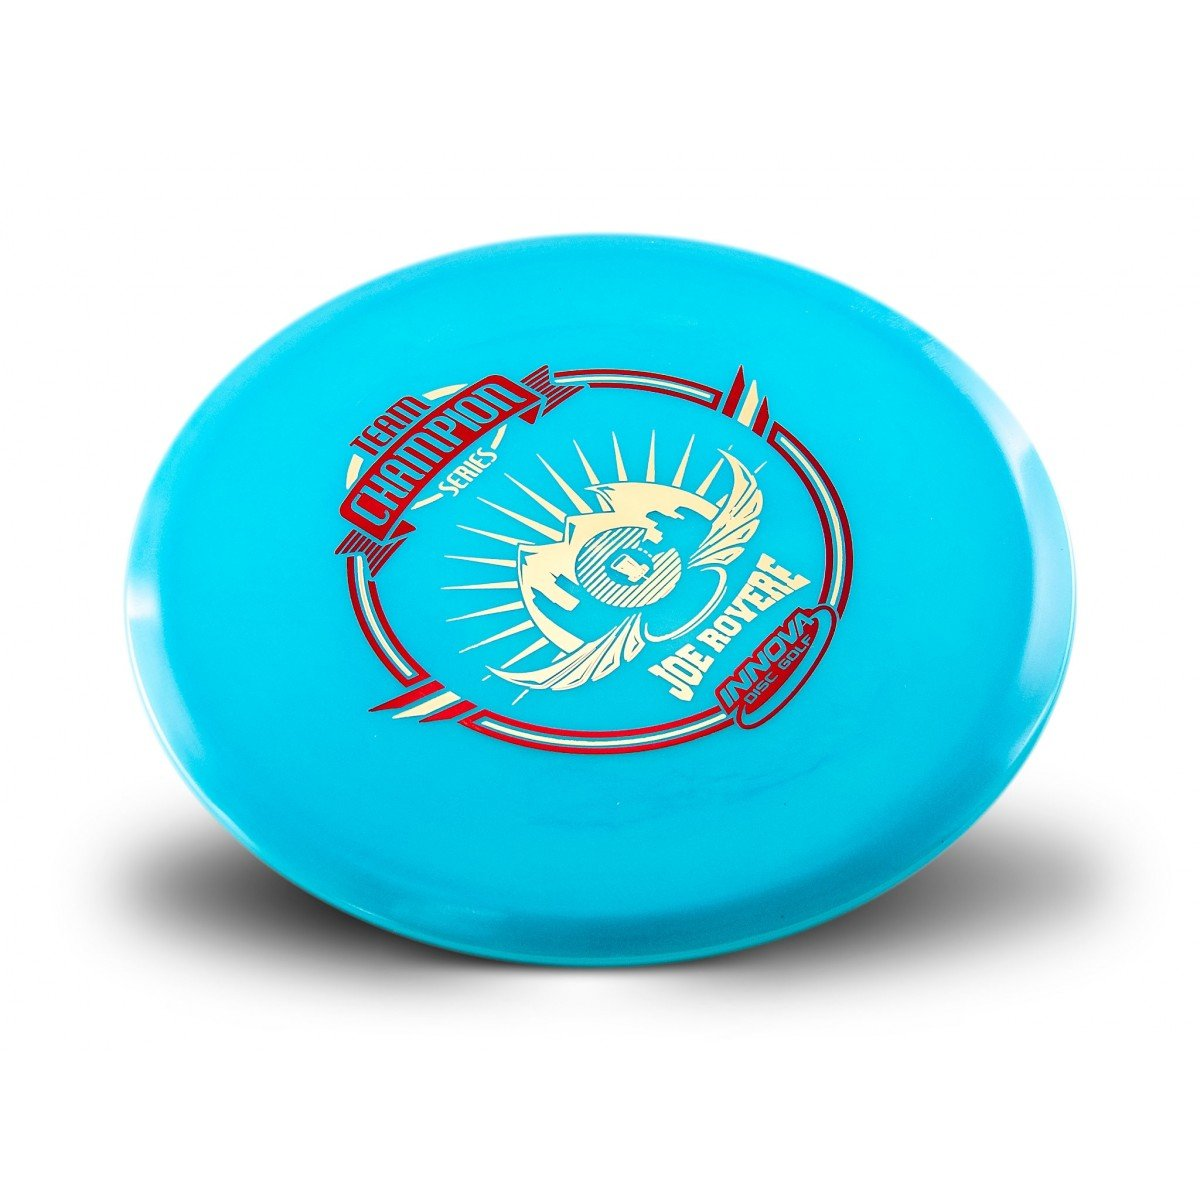 INNOVA Limited Edition Tour Series Joe Rovere Champion Glow Roc3 Mid-Range Golf Disc [Colors May Vary] - 178-180g